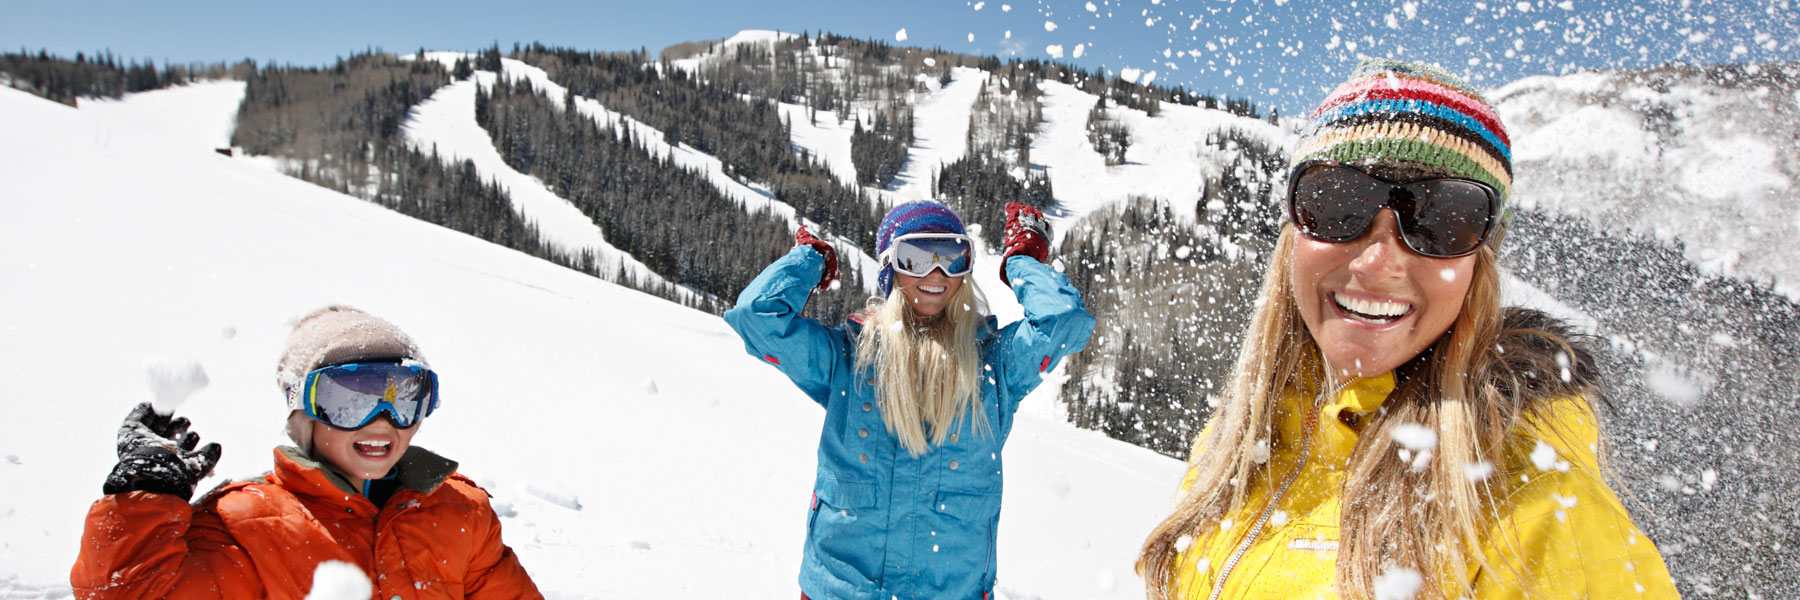 Park City, UT Ski Vacation: Stay 4 or more nights and get your Final Night FREE at Park City!